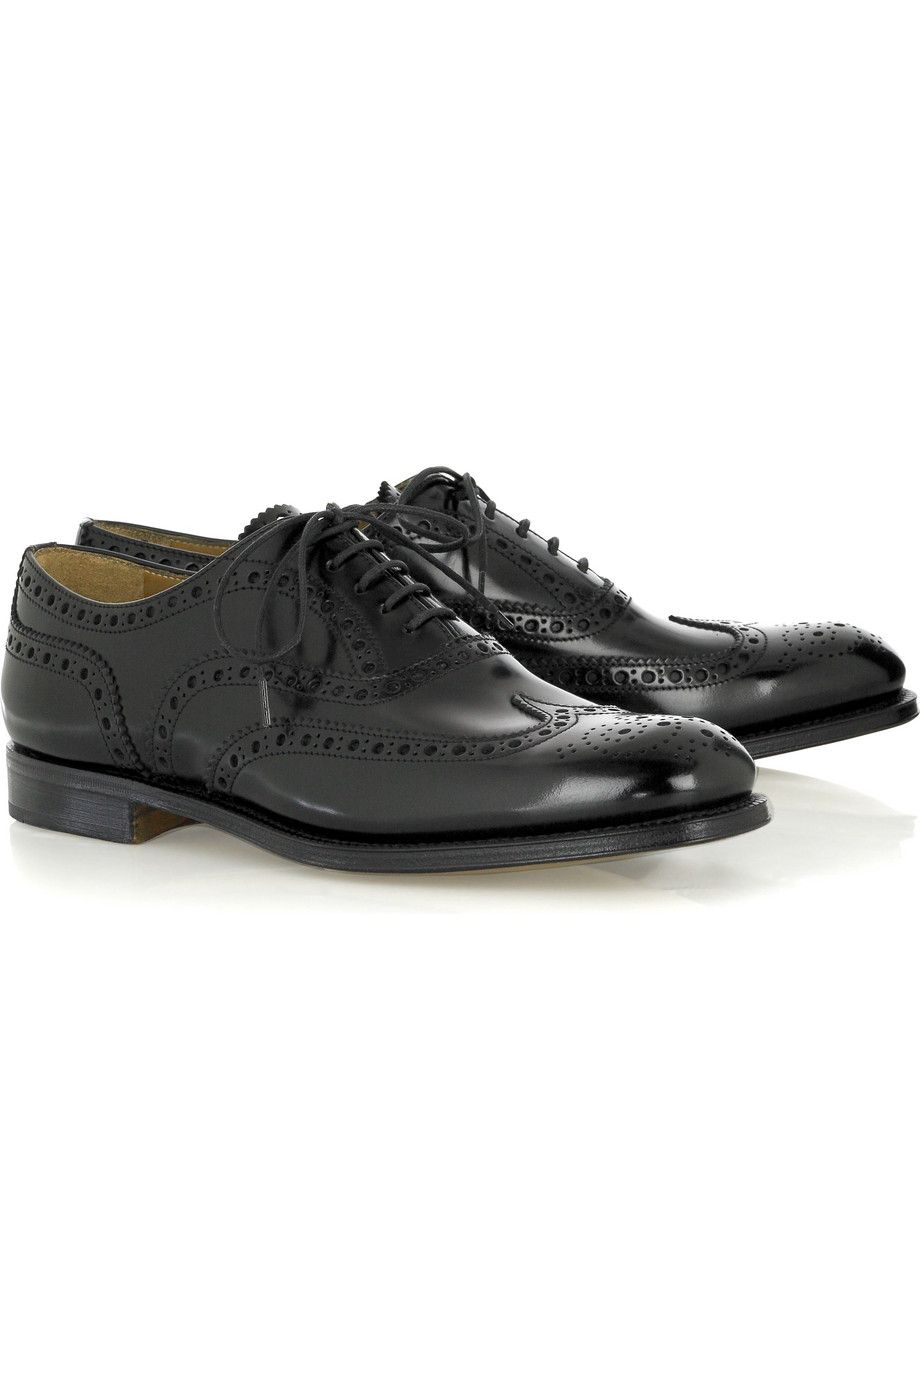 Leather Glossed Autres Burwood Chiffons By Brogues Church's amp; wzx5qaF